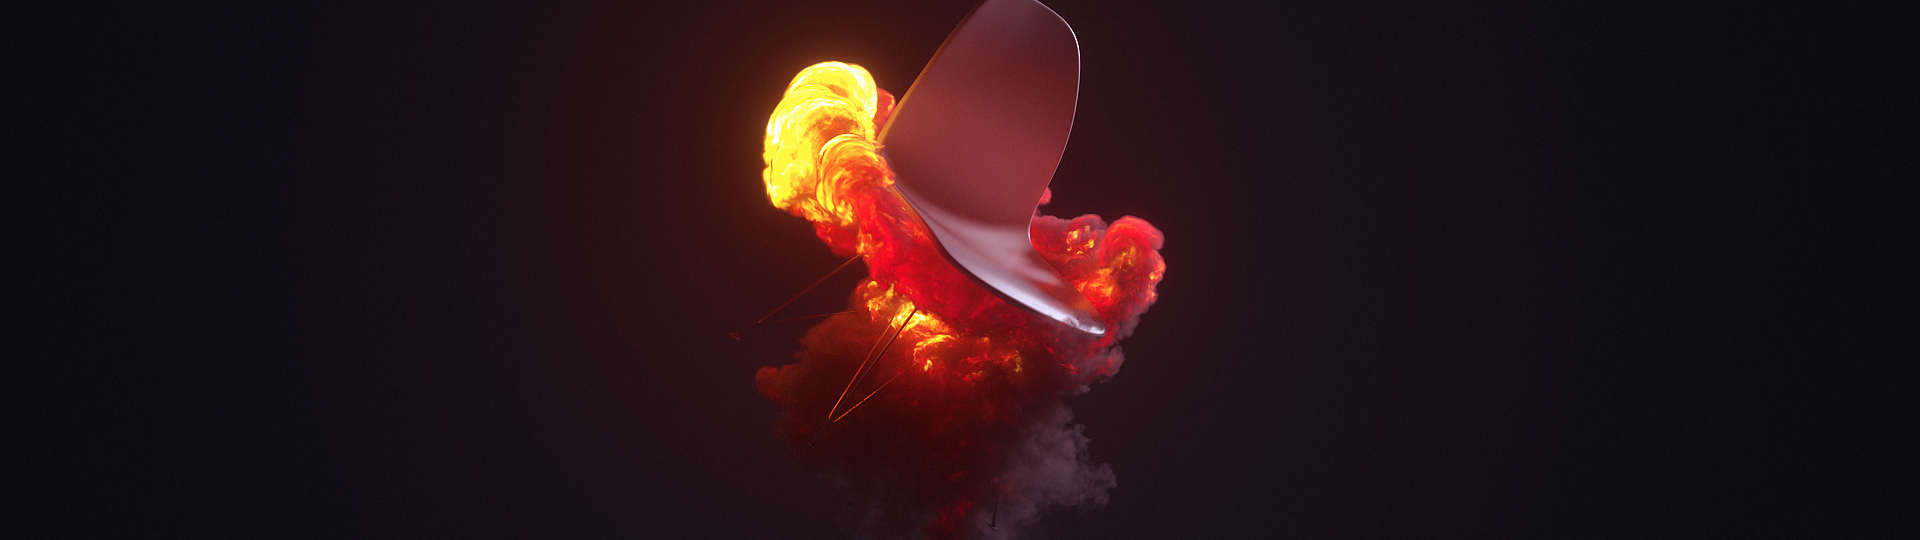 Volume Rendering with Octane Render for Cinema 4D - Turbulence FD - Chair Explosion #2